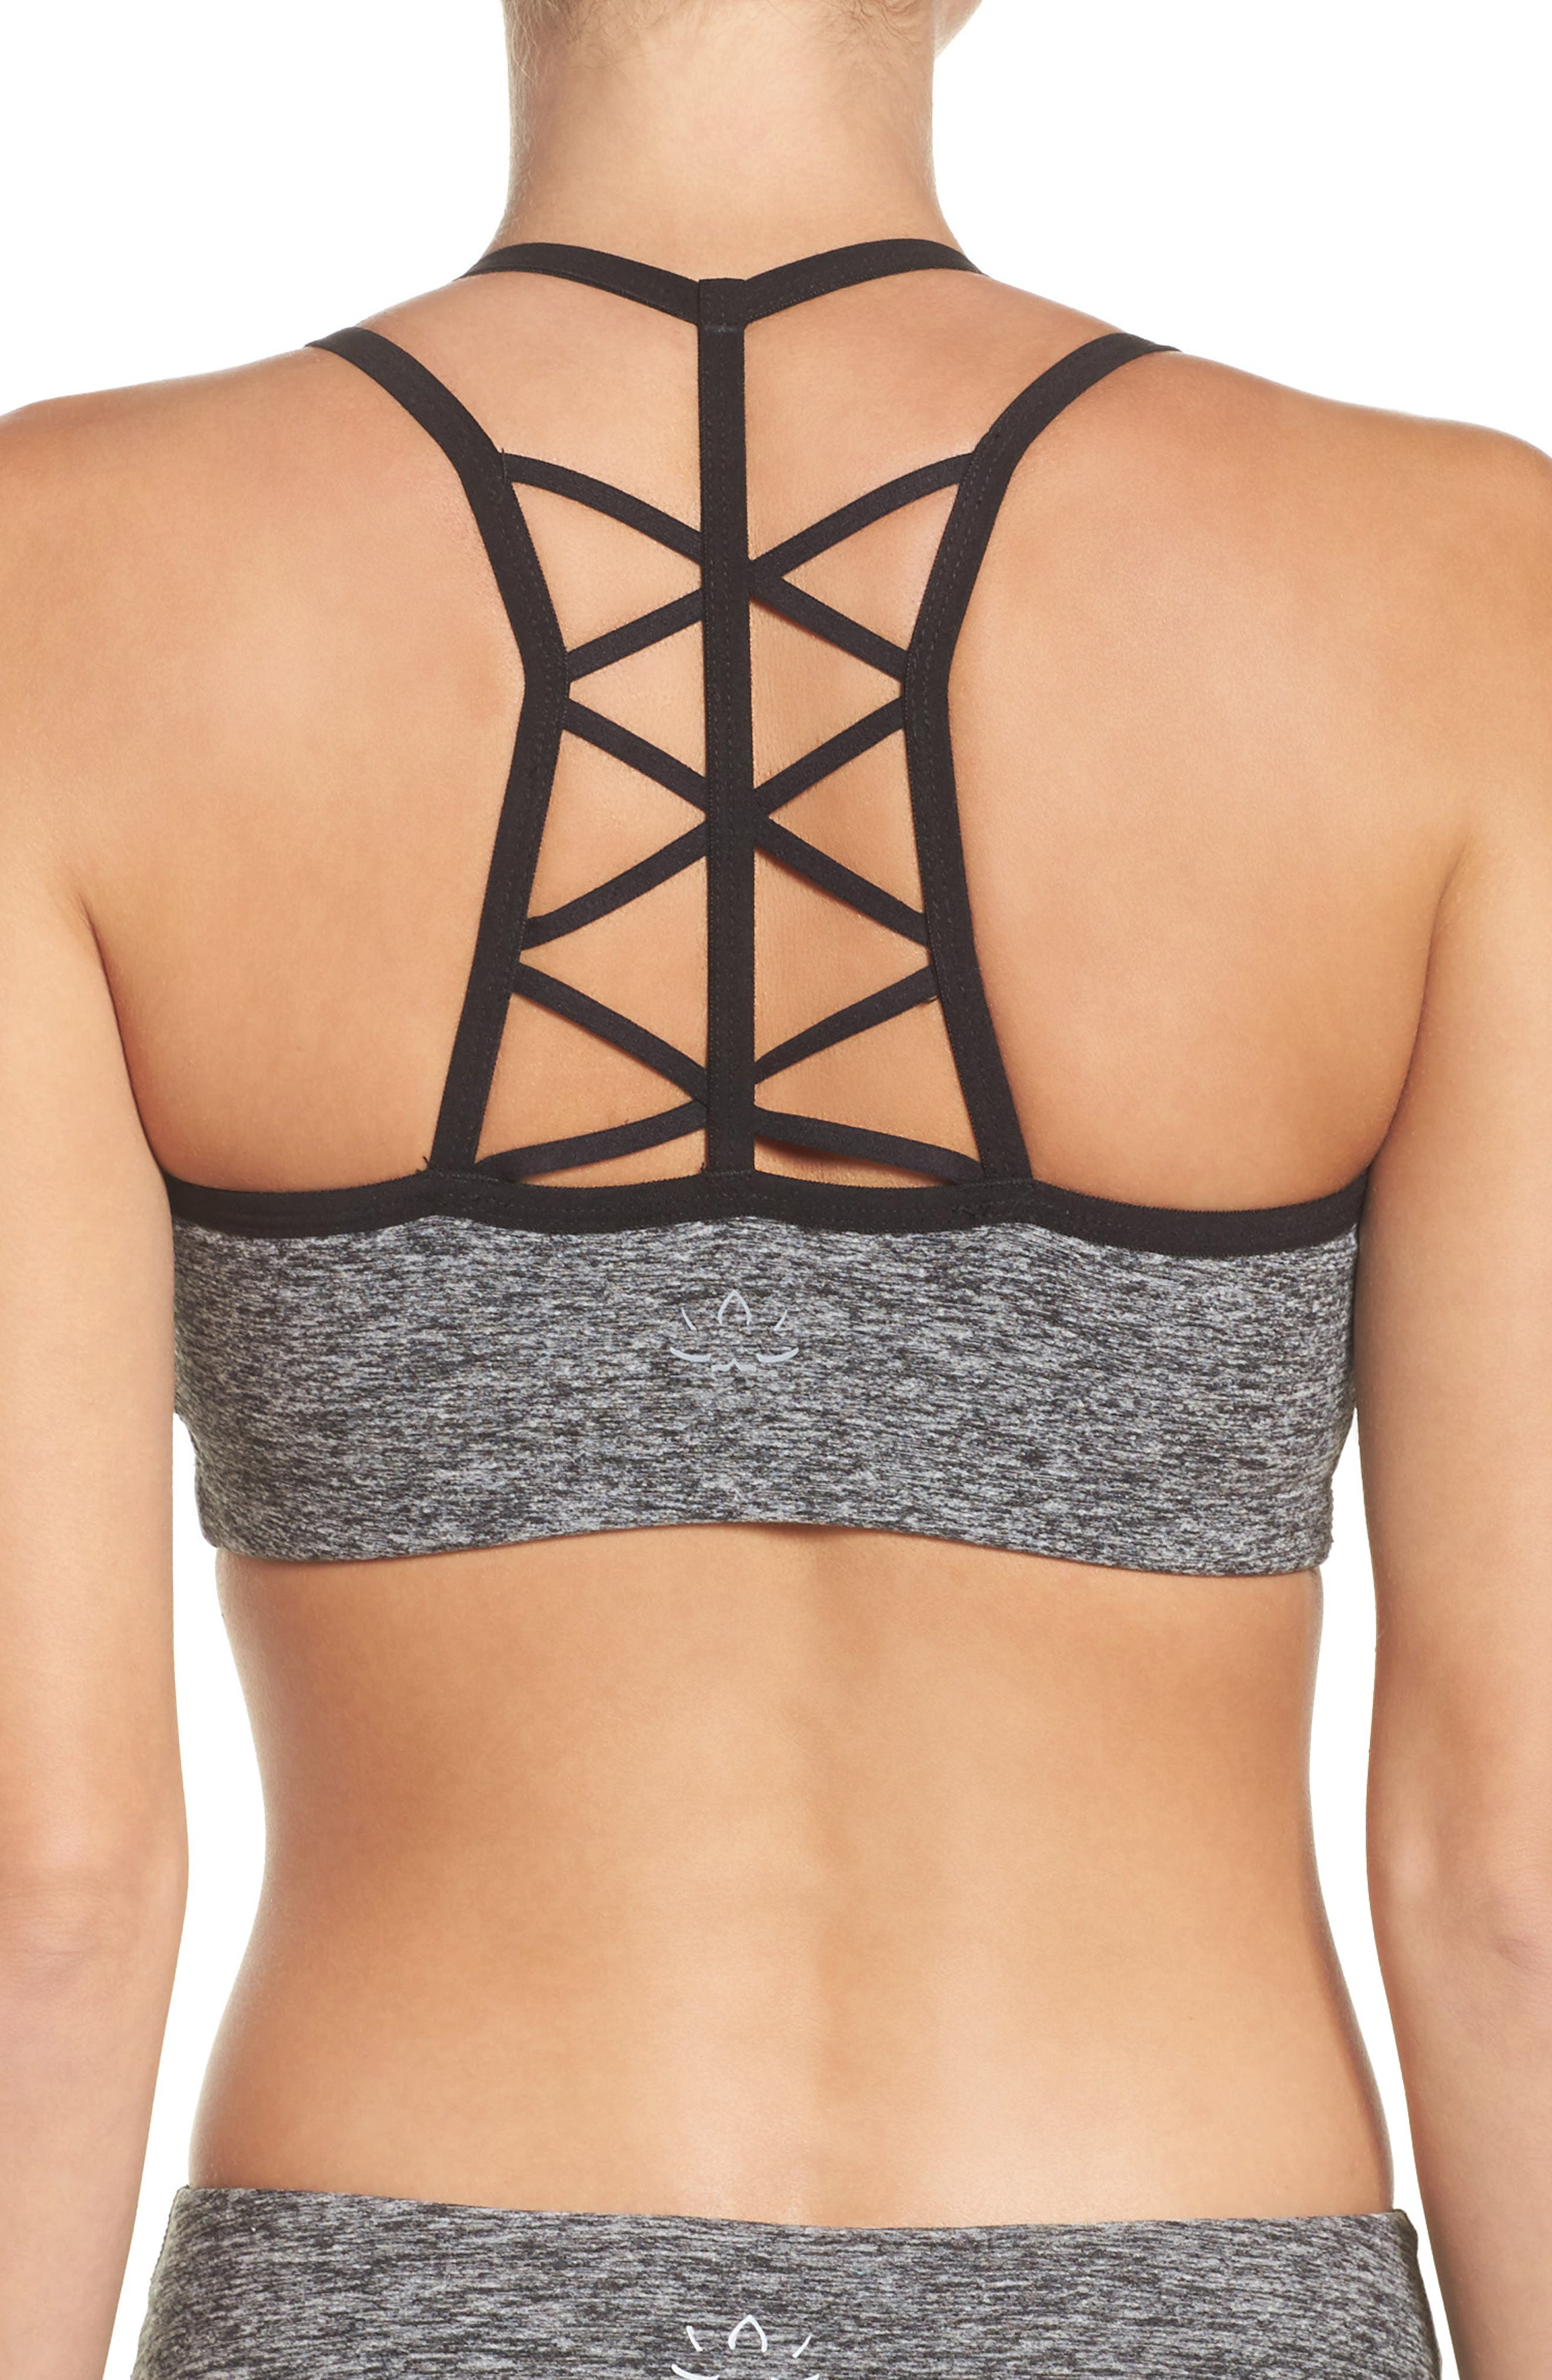 Strappy Hour Bra,                             Alternate thumbnail 2, color,                             Black/ White